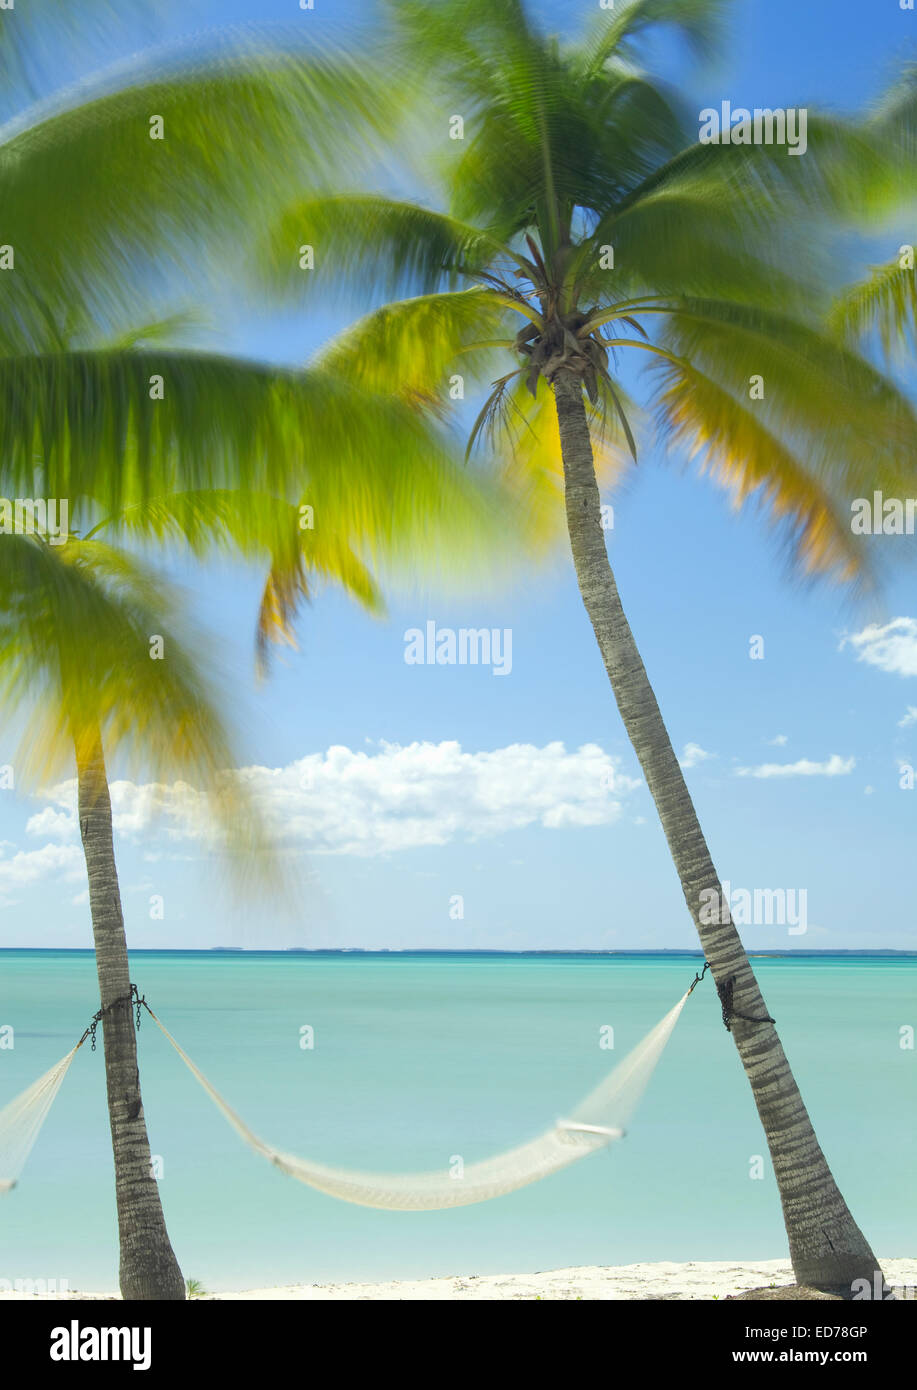 Hammock and palm trees in Abaco, Bahamas - Stock Image